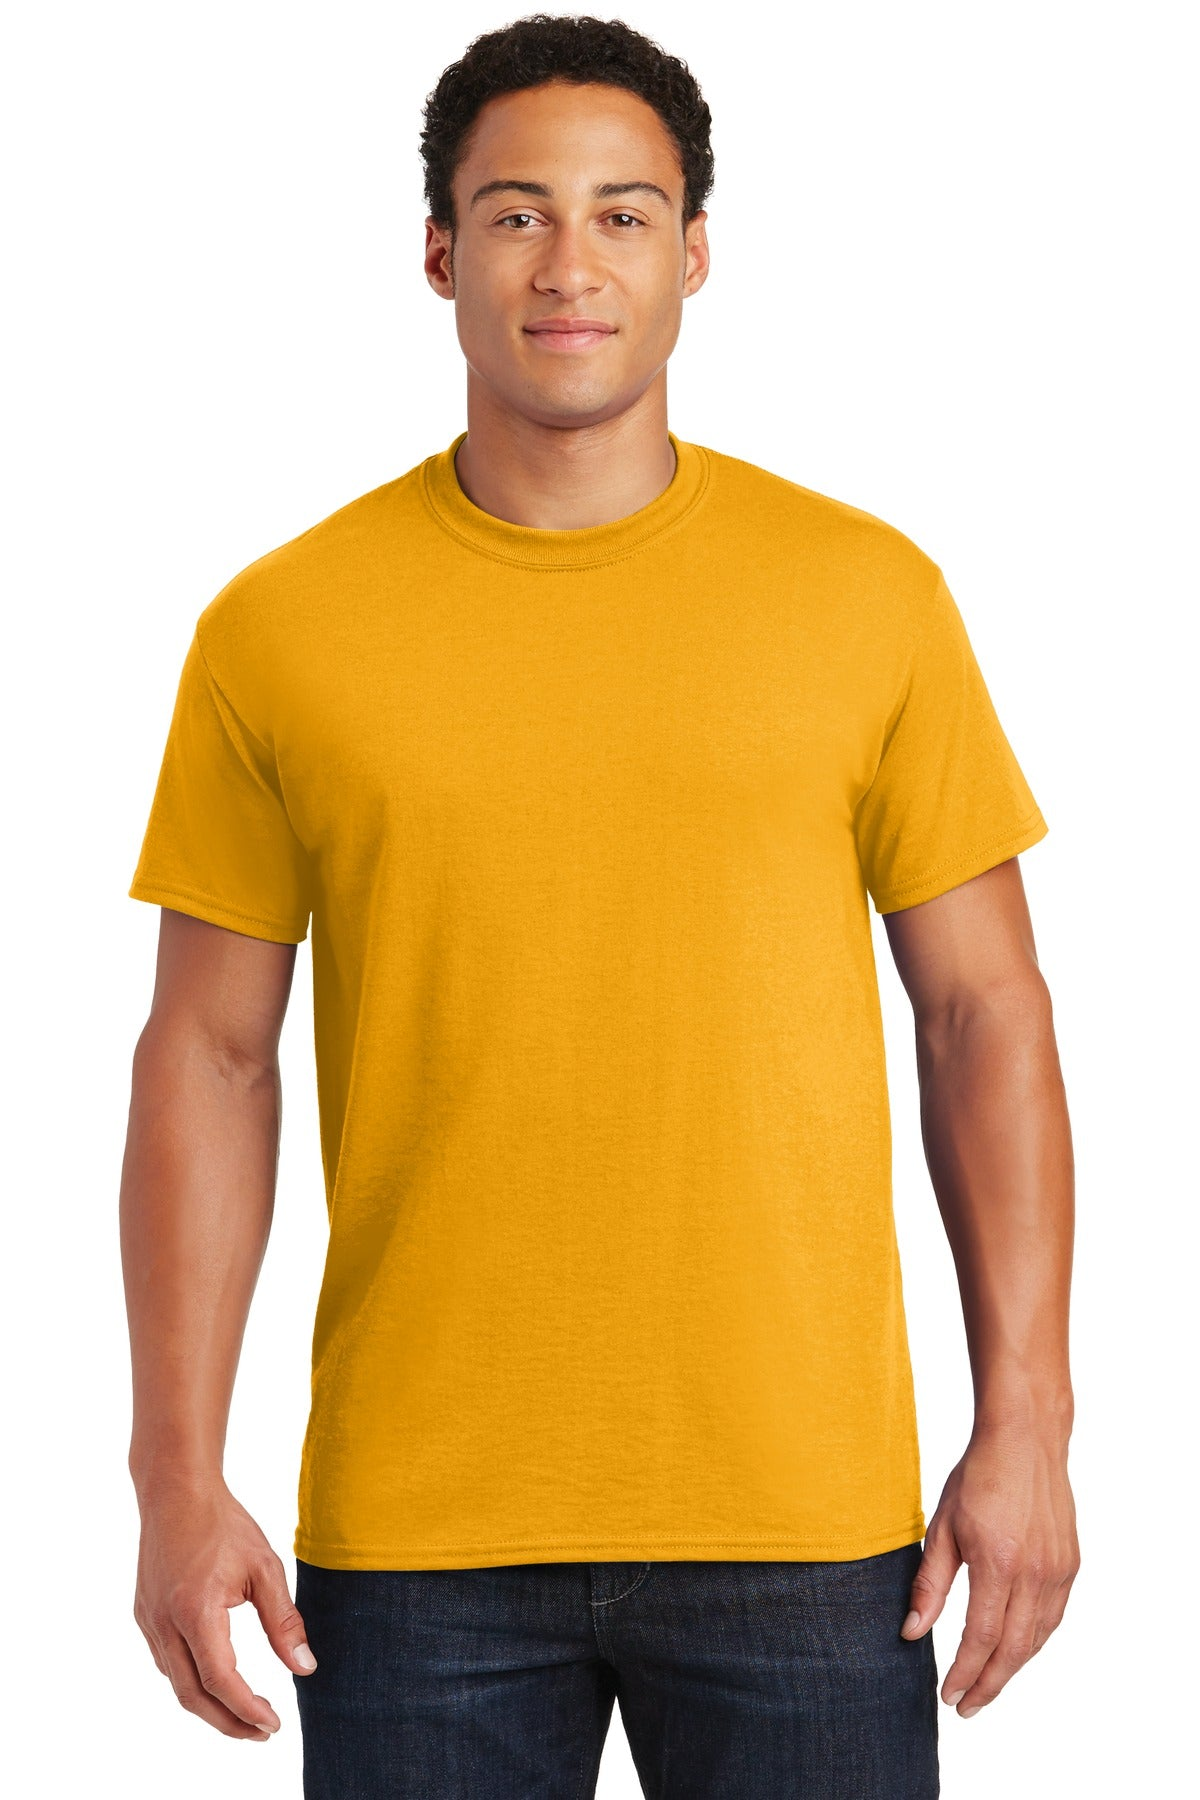 Gold Gildan DryBlend 50 Cotton/50 Poly T-Shirt.